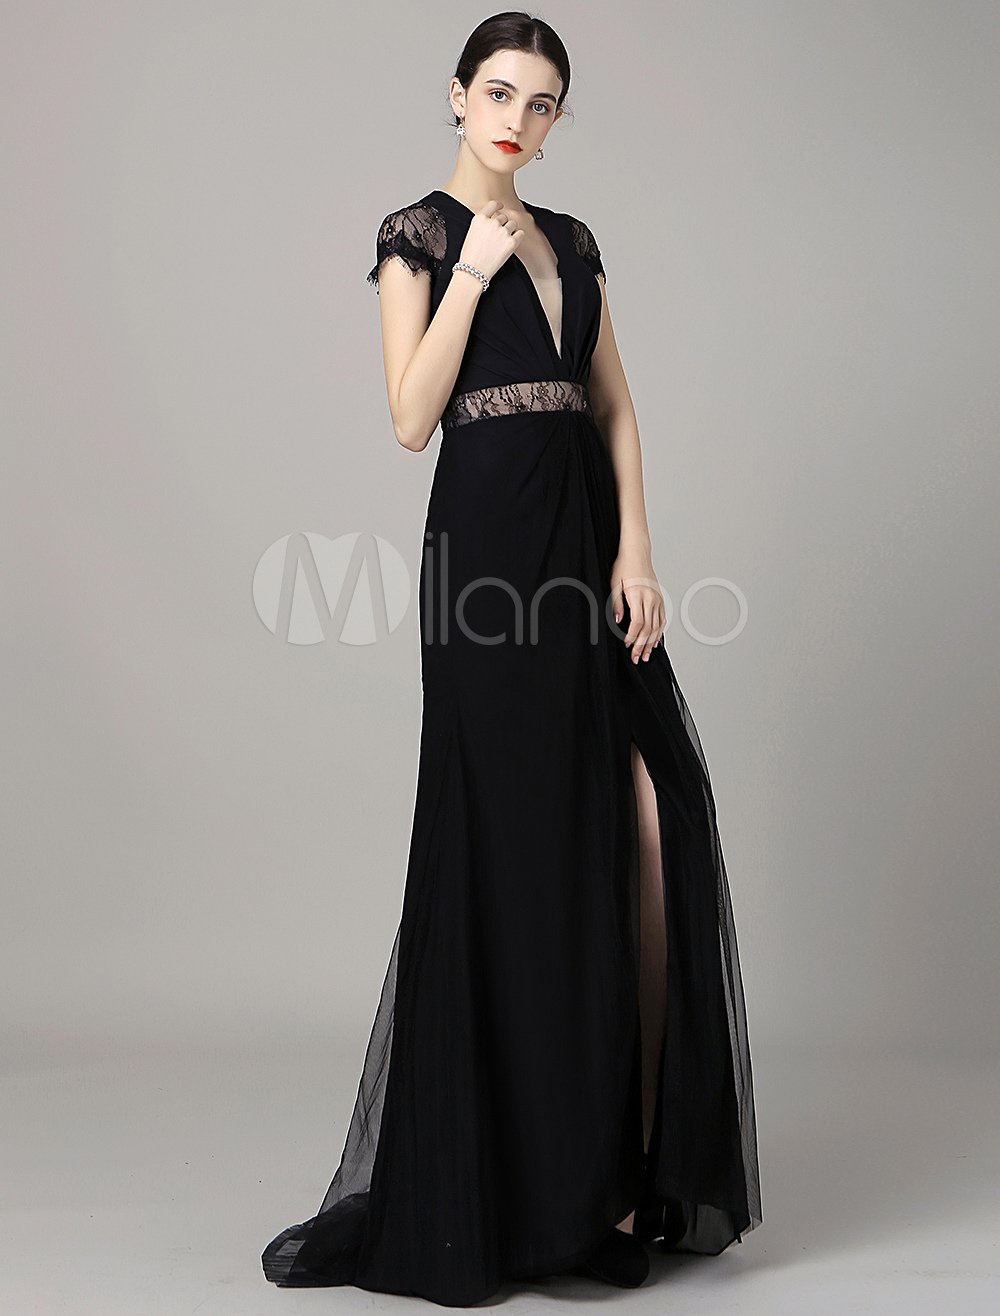 Black Chiffon Evening Dress Plunging Cap Sleeves Prespective Sexy Lace Mermaid Party Dress Milanoo